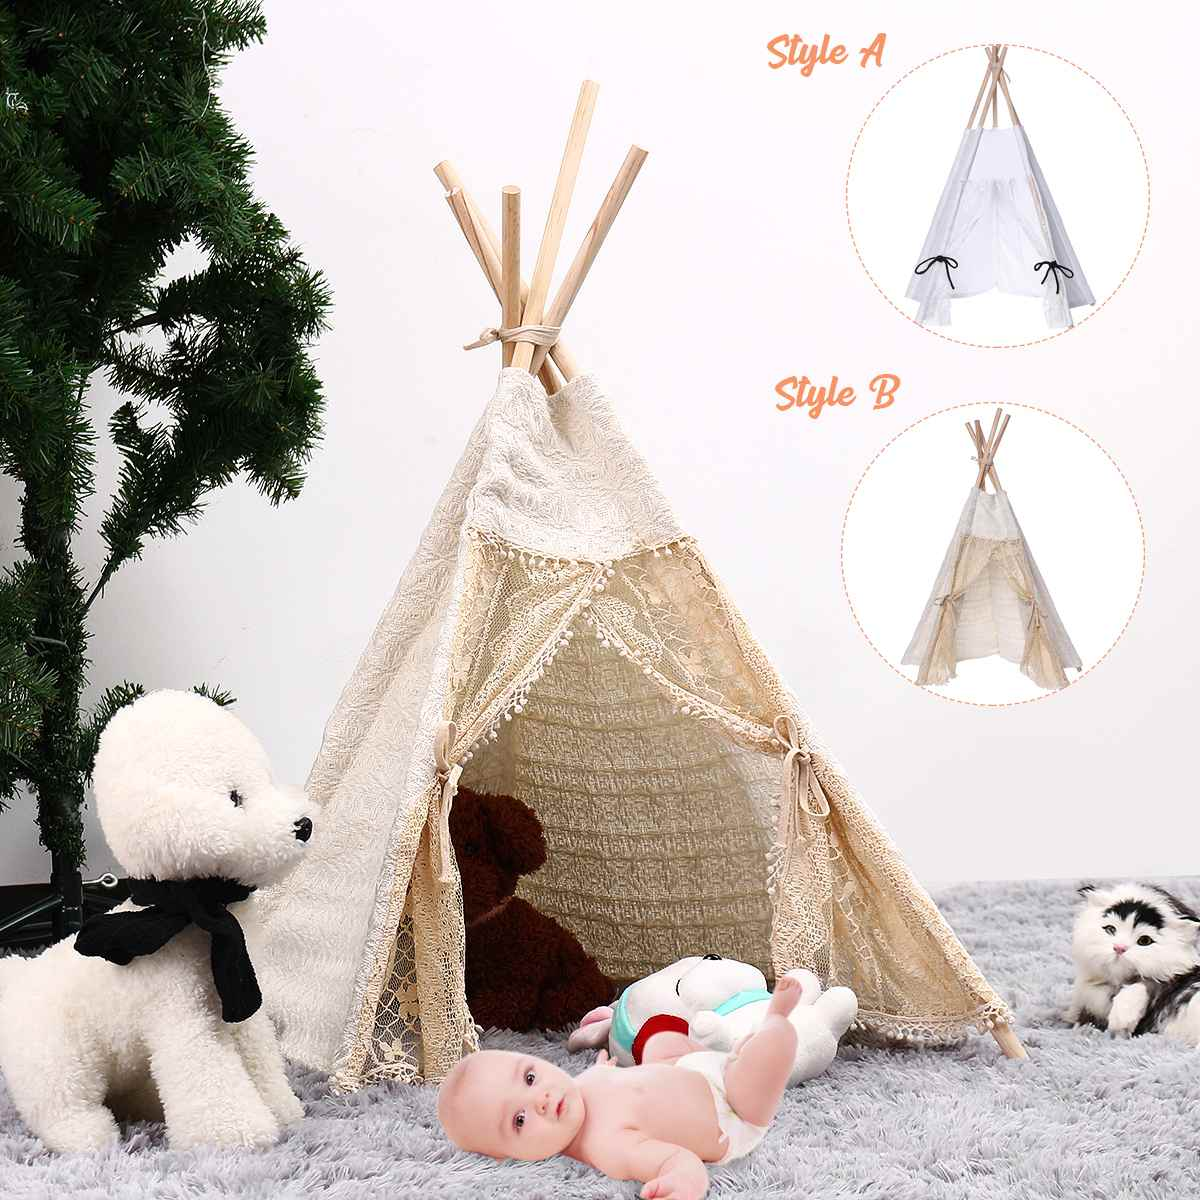 80cm-Large Canvas Teepee Tent Kids Sleeping Newborn Photography Photo Props Kids Teepee Tipi House Children Tipi Tee Tent